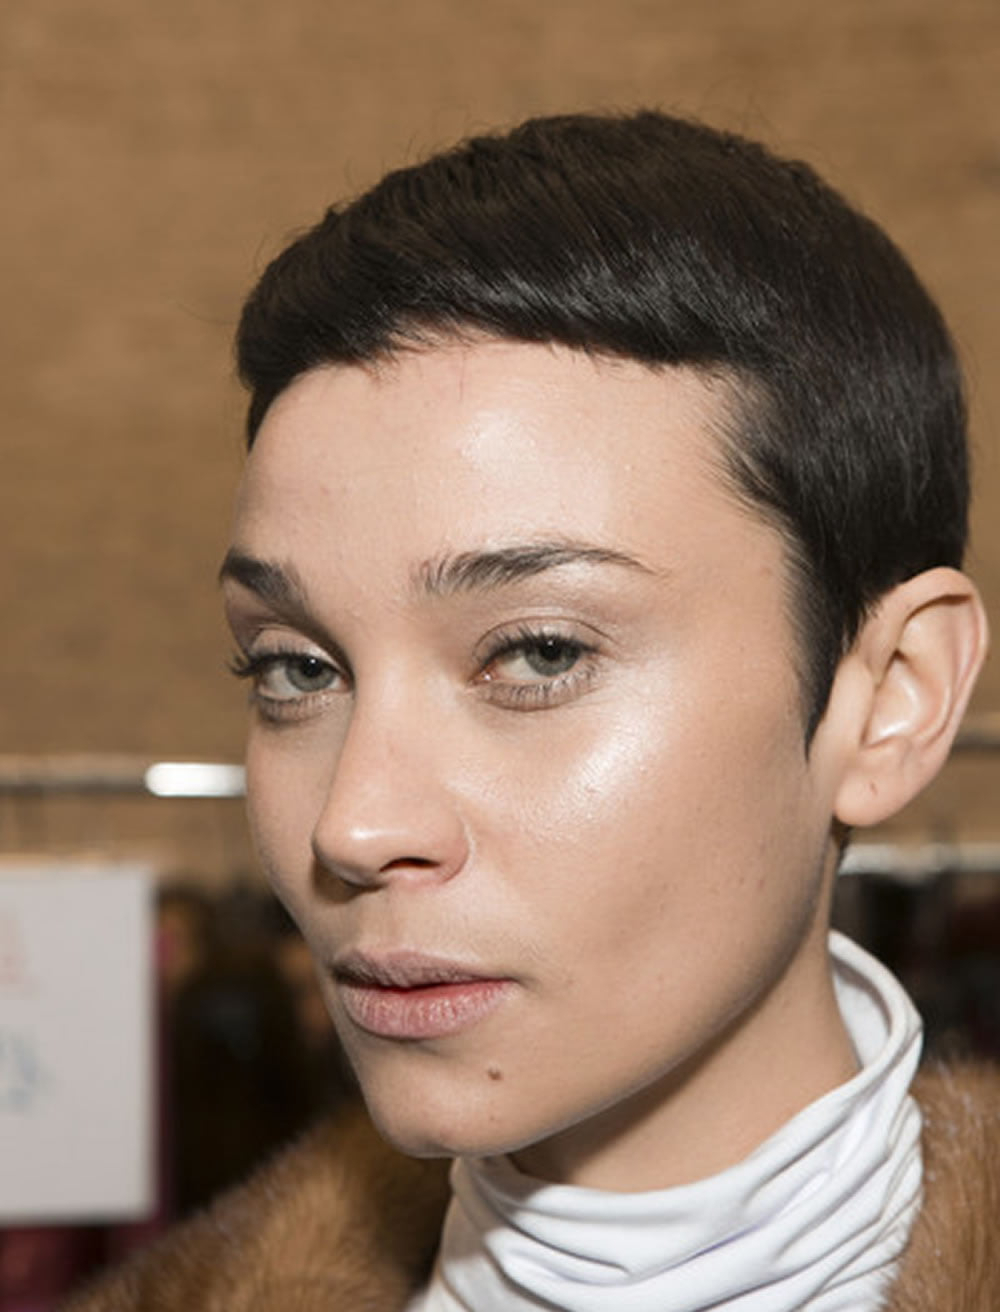 Widely Used Pixie Cut Hairstyles In Pixie Haircuts For Business Women (View 3 of 20)